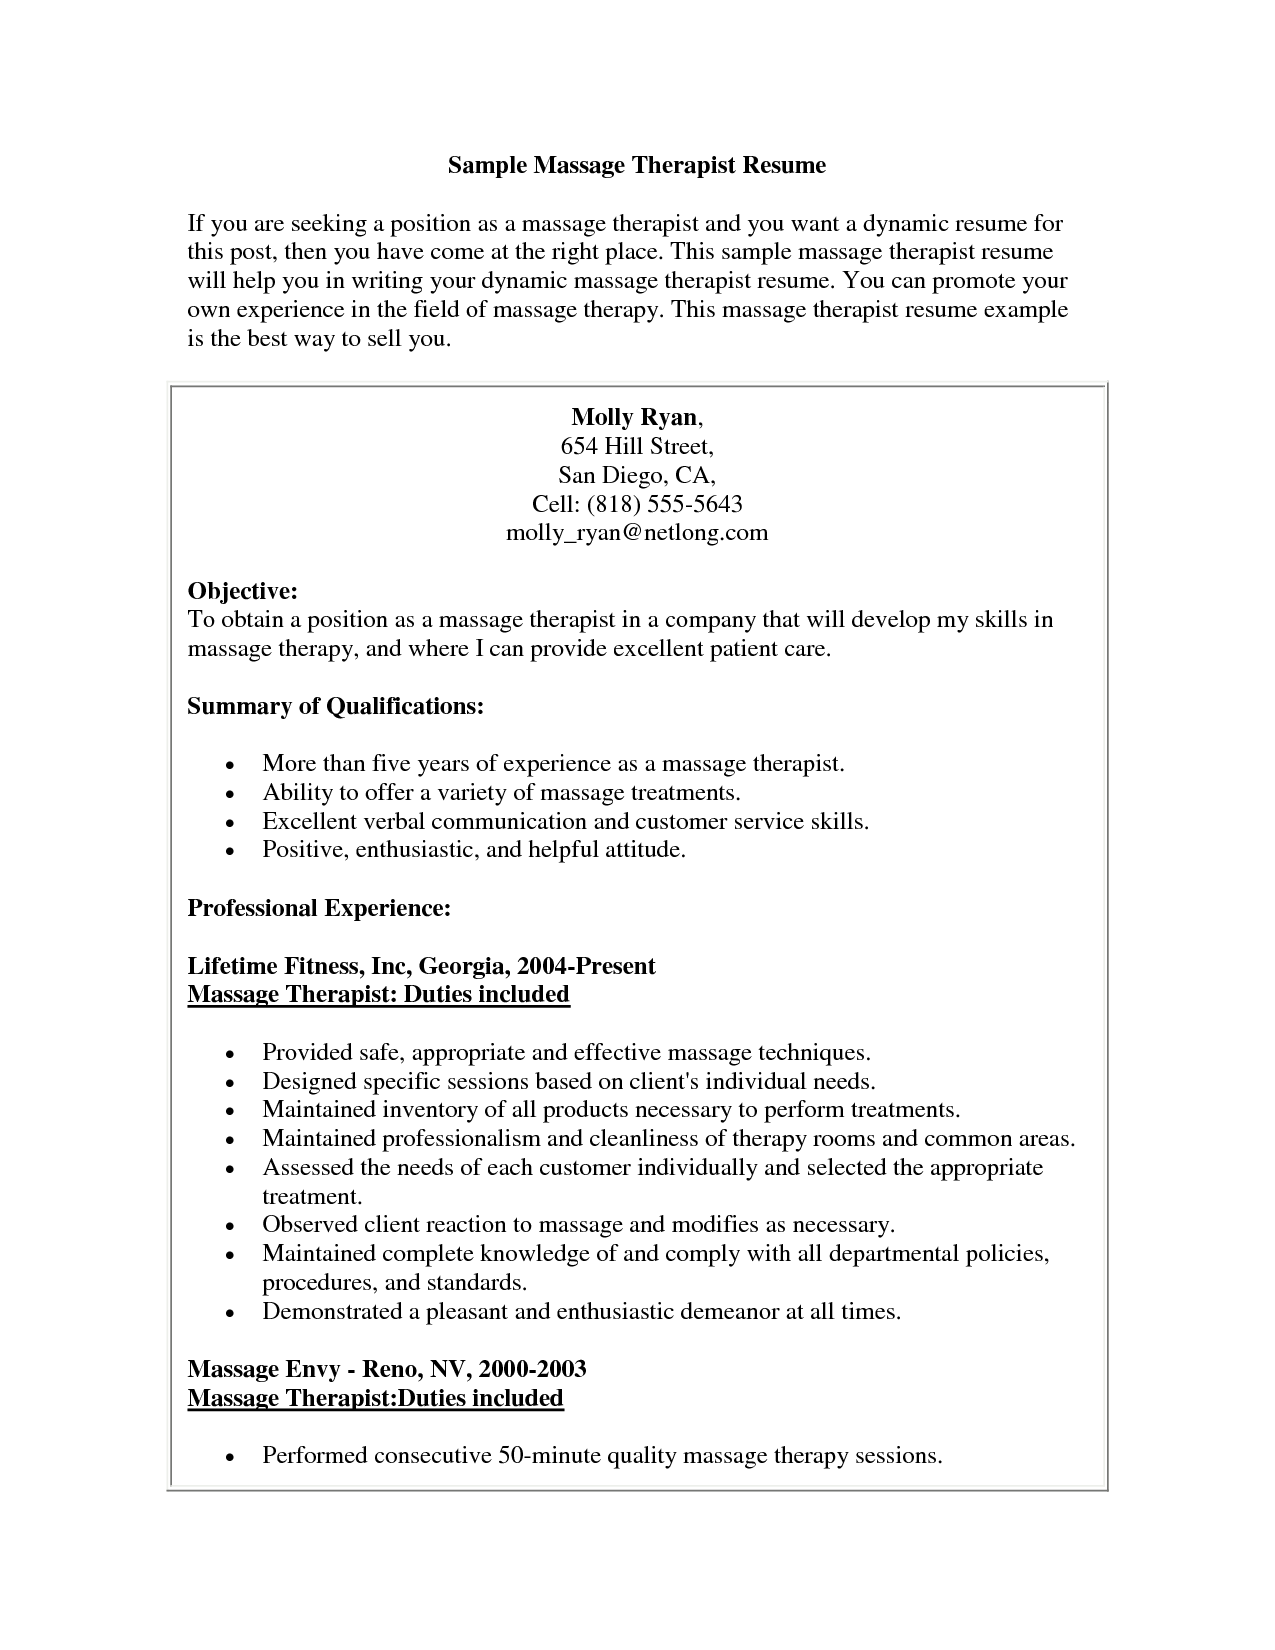 massage therapist resume sample massage therapist resume sample massage therapist resume objective massage therapist - Resume Examples For Massage Therapist